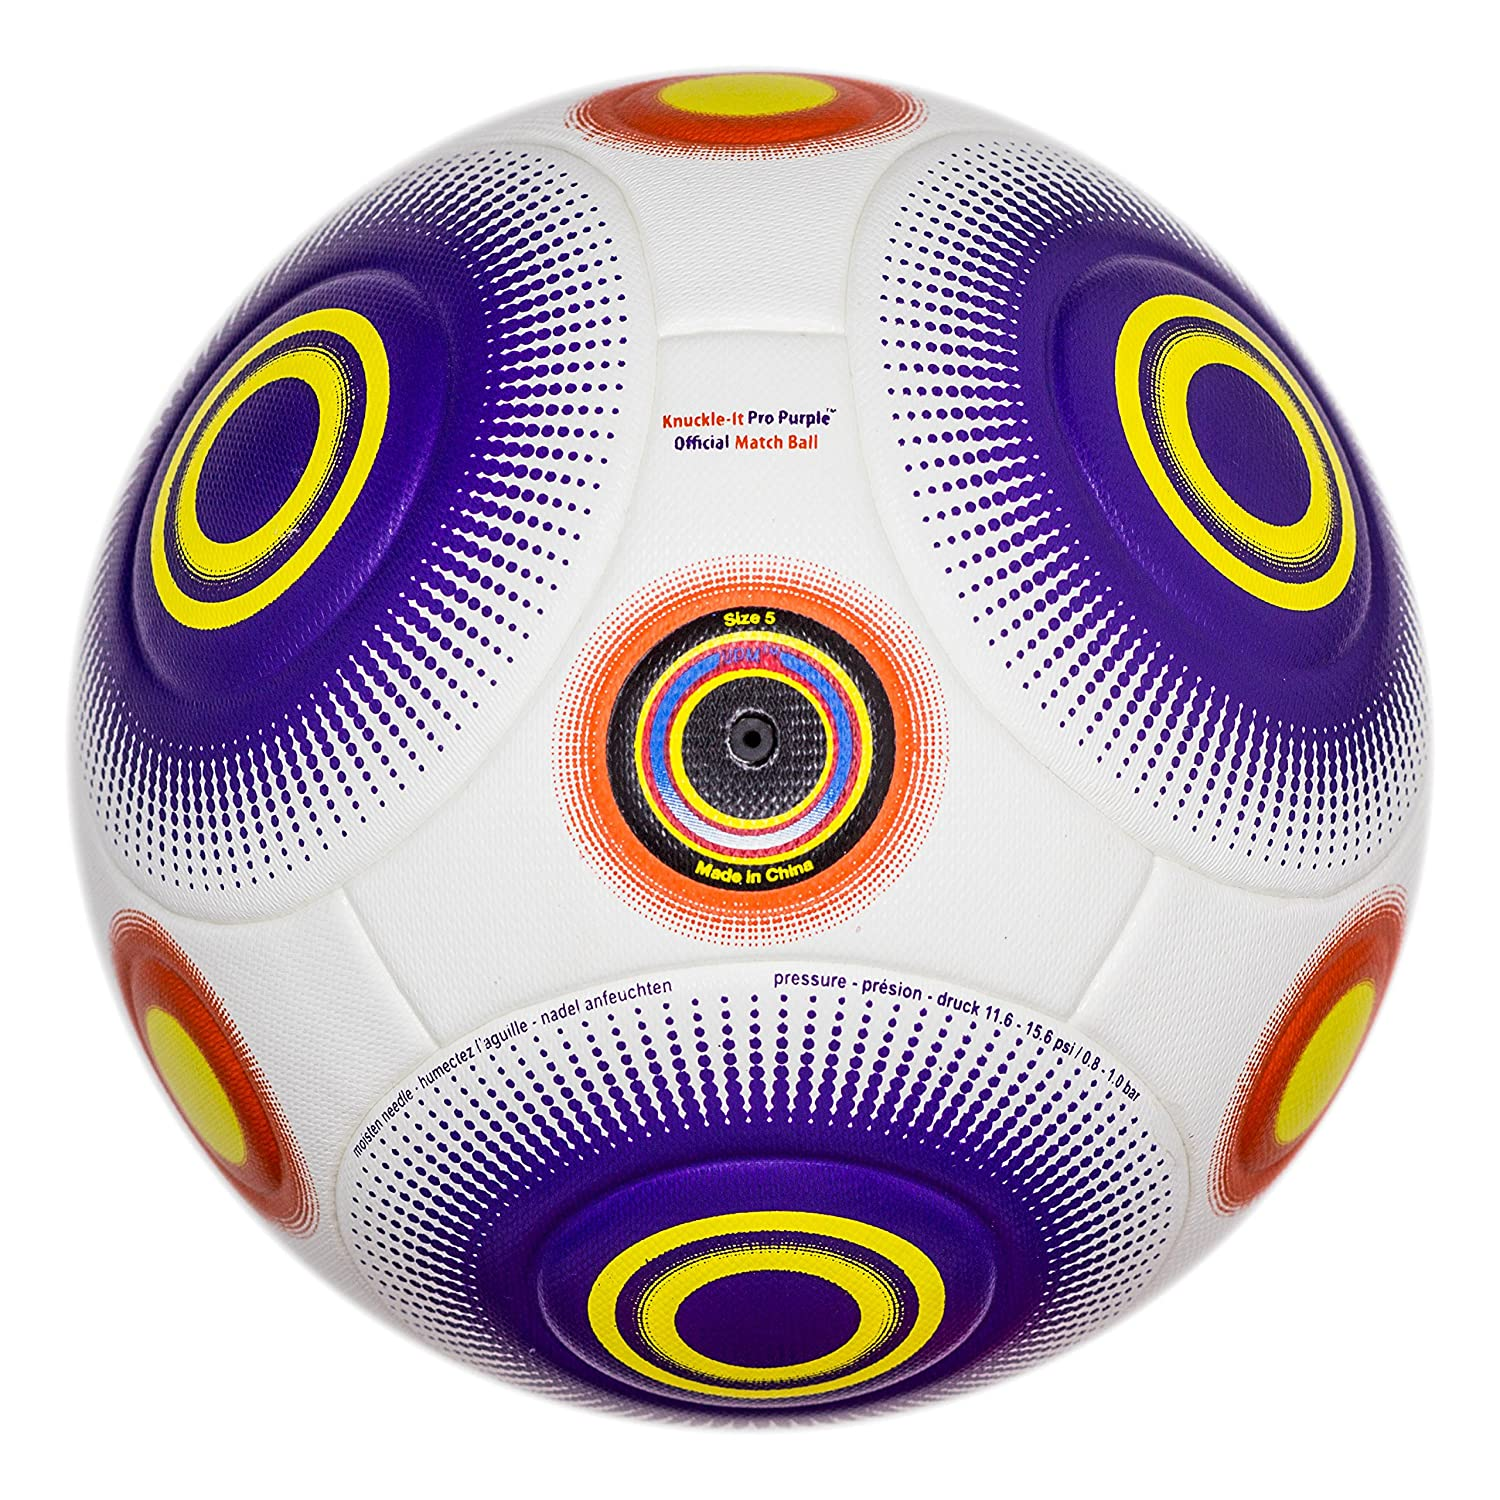 bend-itサッカー、knuckle-it Pro、サッカーボール、Official Match Ball with VPM and VRCテクノロジー B075DJNC1J 5|White/Purple (Knuckle-It Pro Purple) White/Purple (Knuckle-It Pro Purple) 5